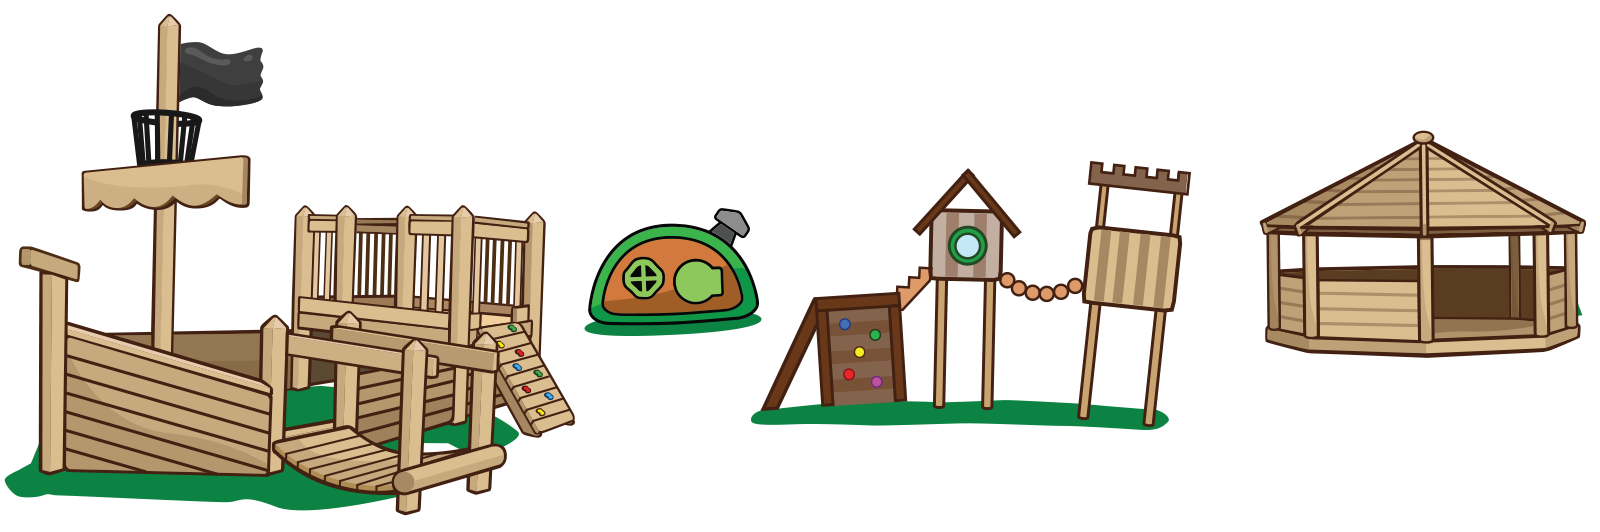 School childrens nursery outdoor. Outside clipart playground equipment